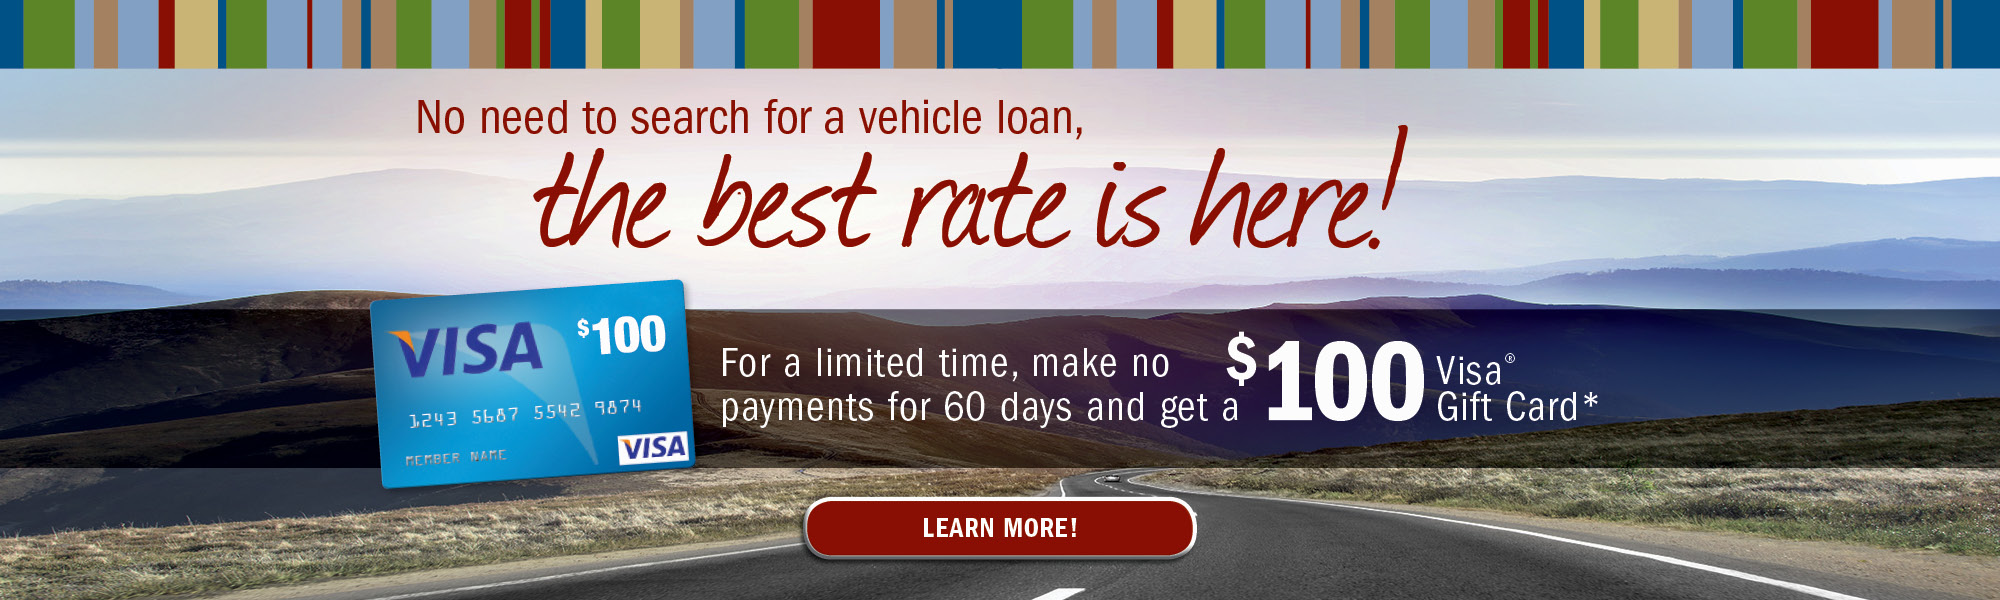 The best rate is here! For a limited time, make no payments for 60 days and get a 100 dollar Visa gift card